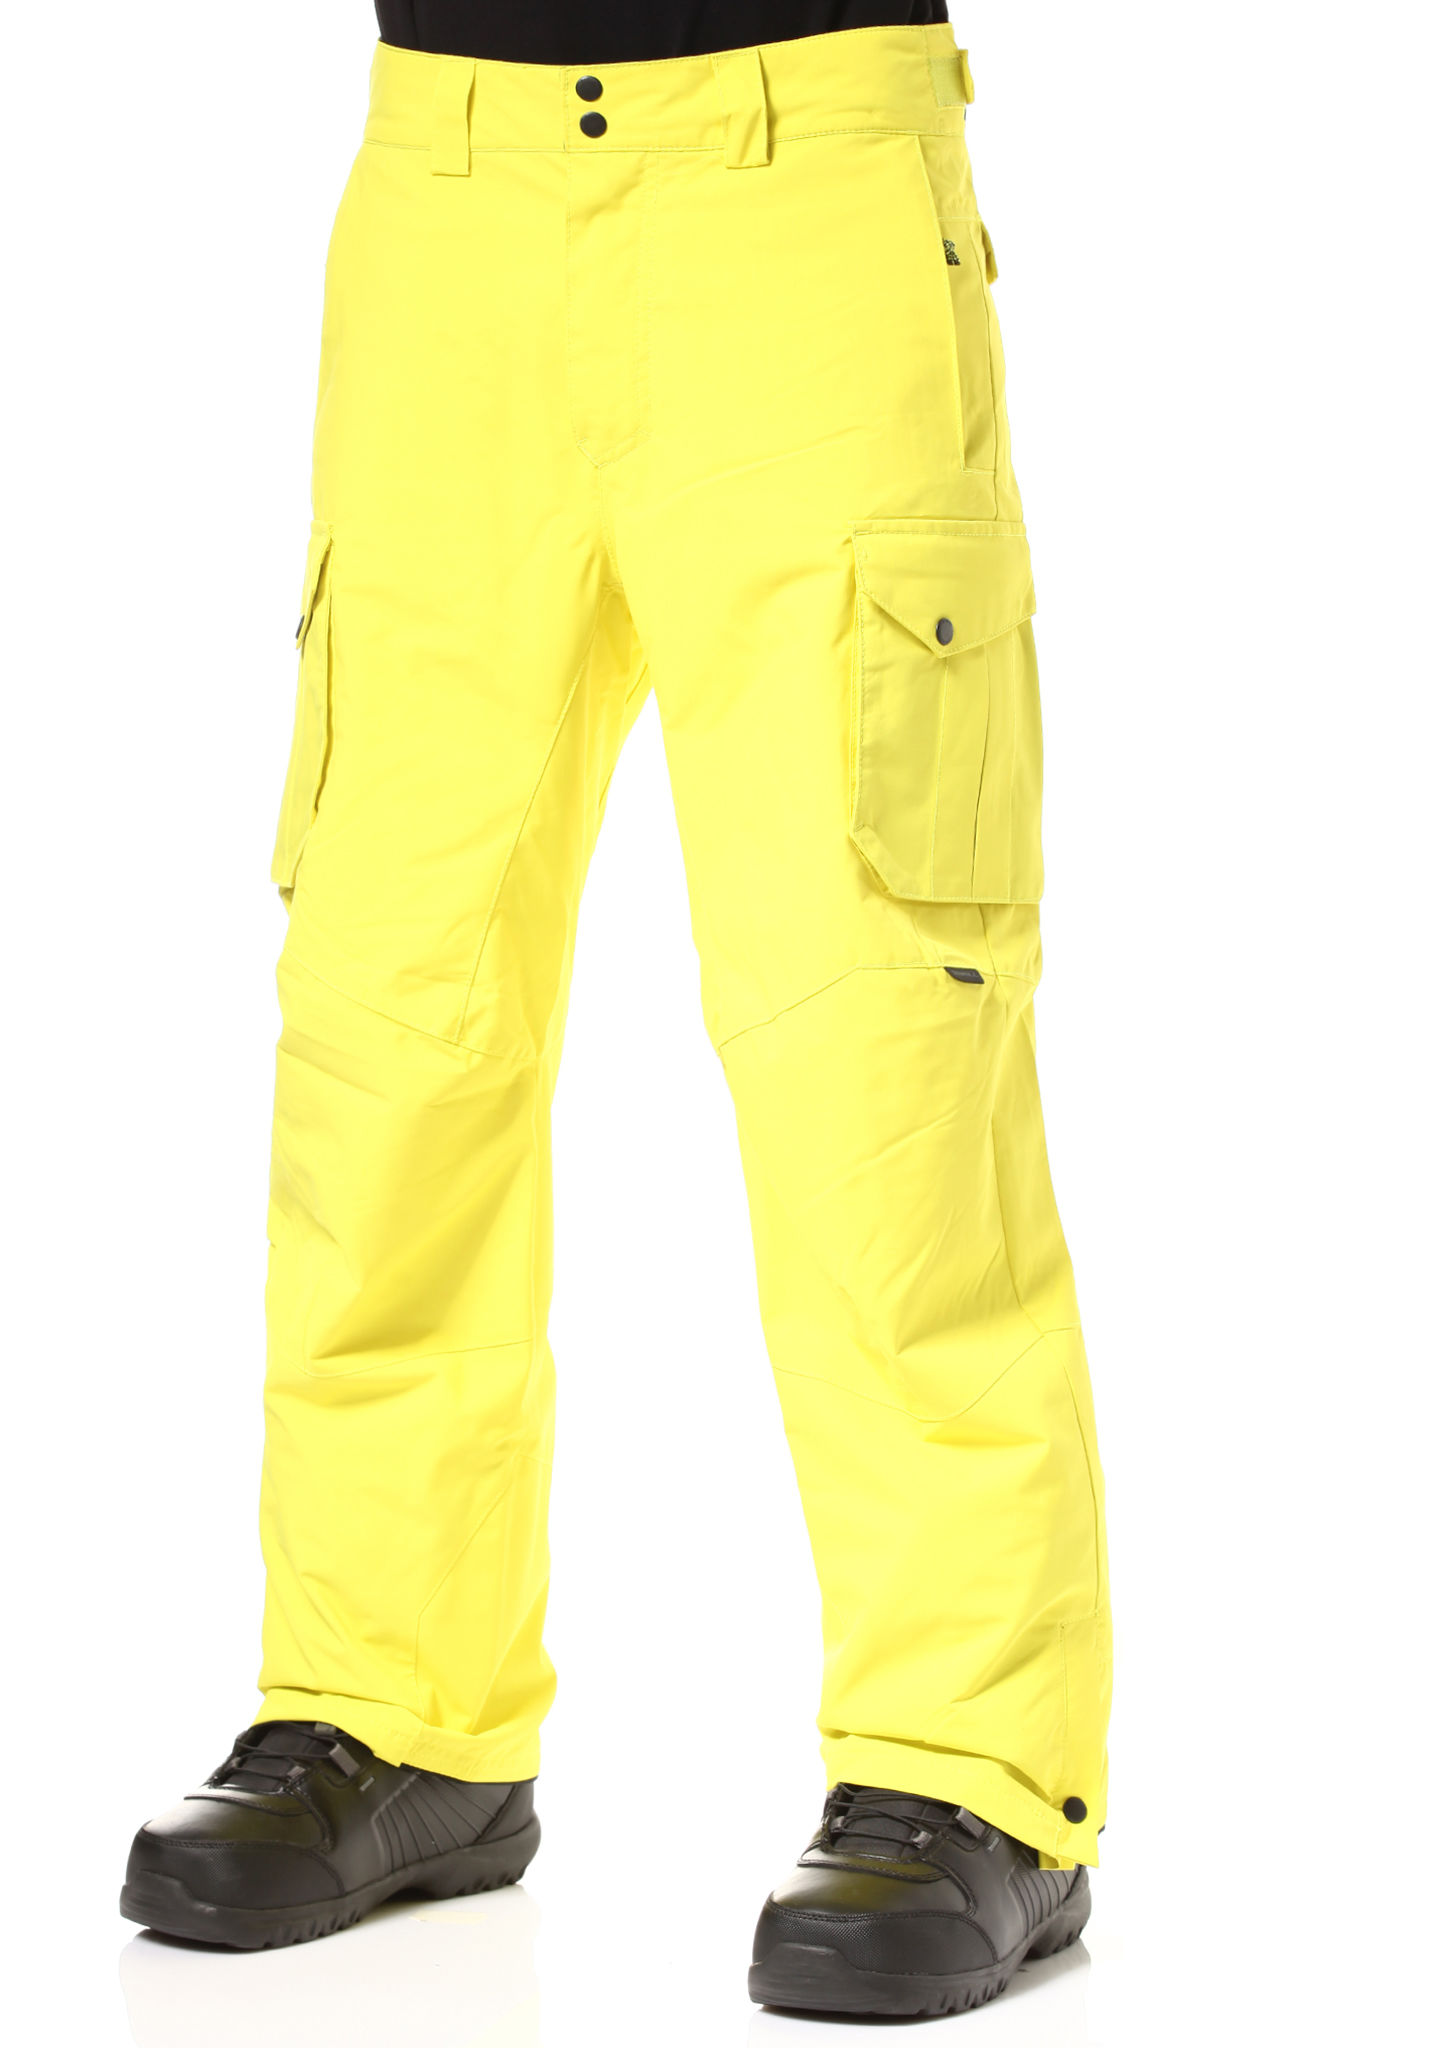 cfc4cc1a O Neill Snowboard Pants - Best Style Pants Man And Woman